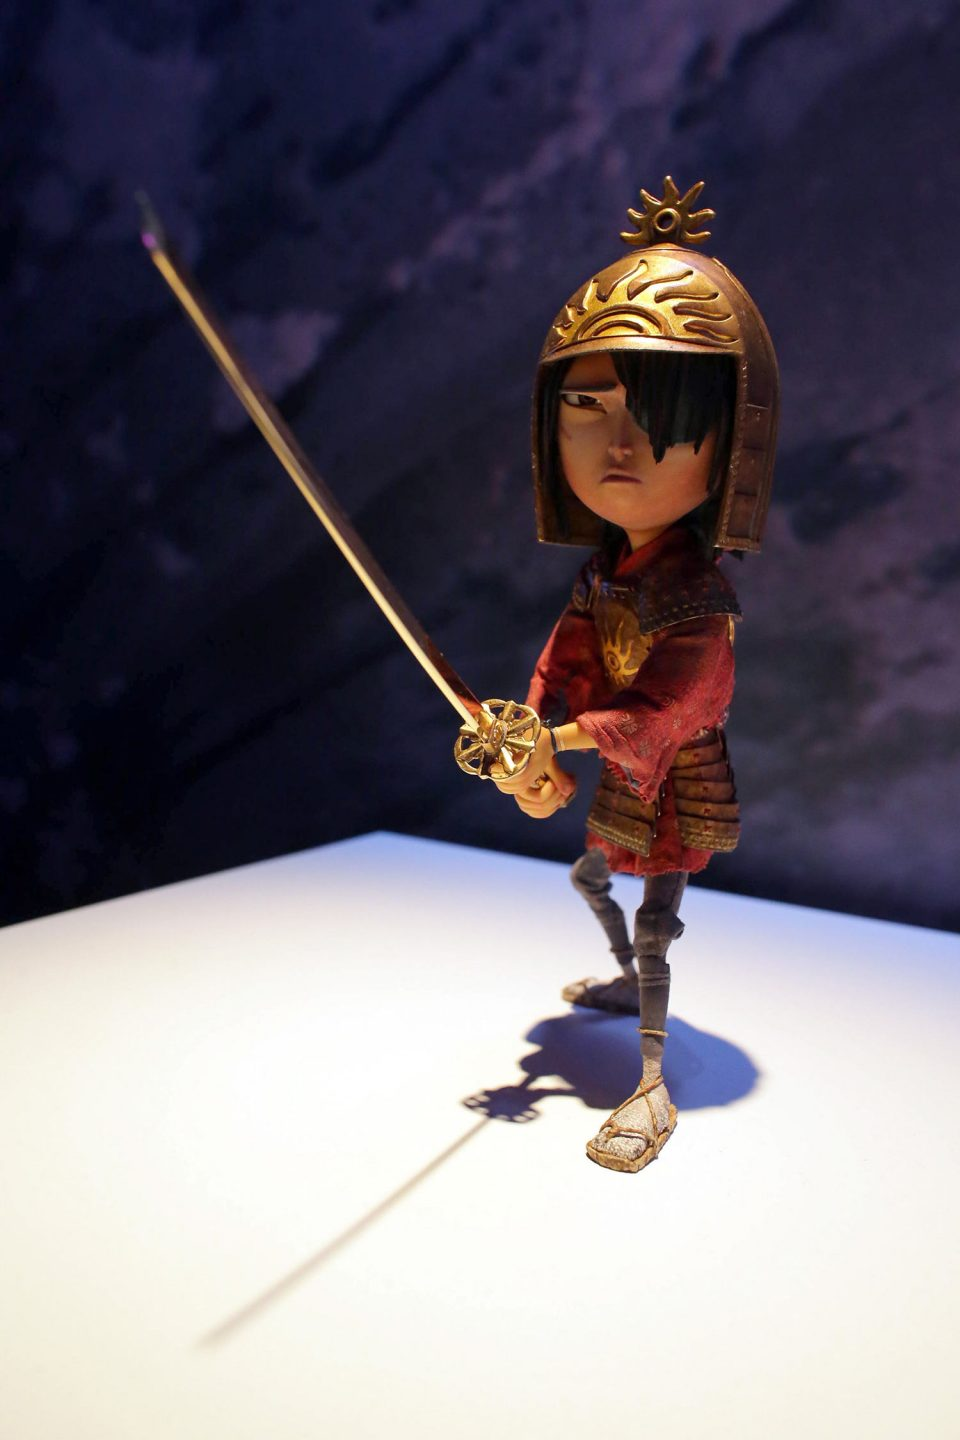 From Coraline to Kubo: A Magical LAIKA Experience